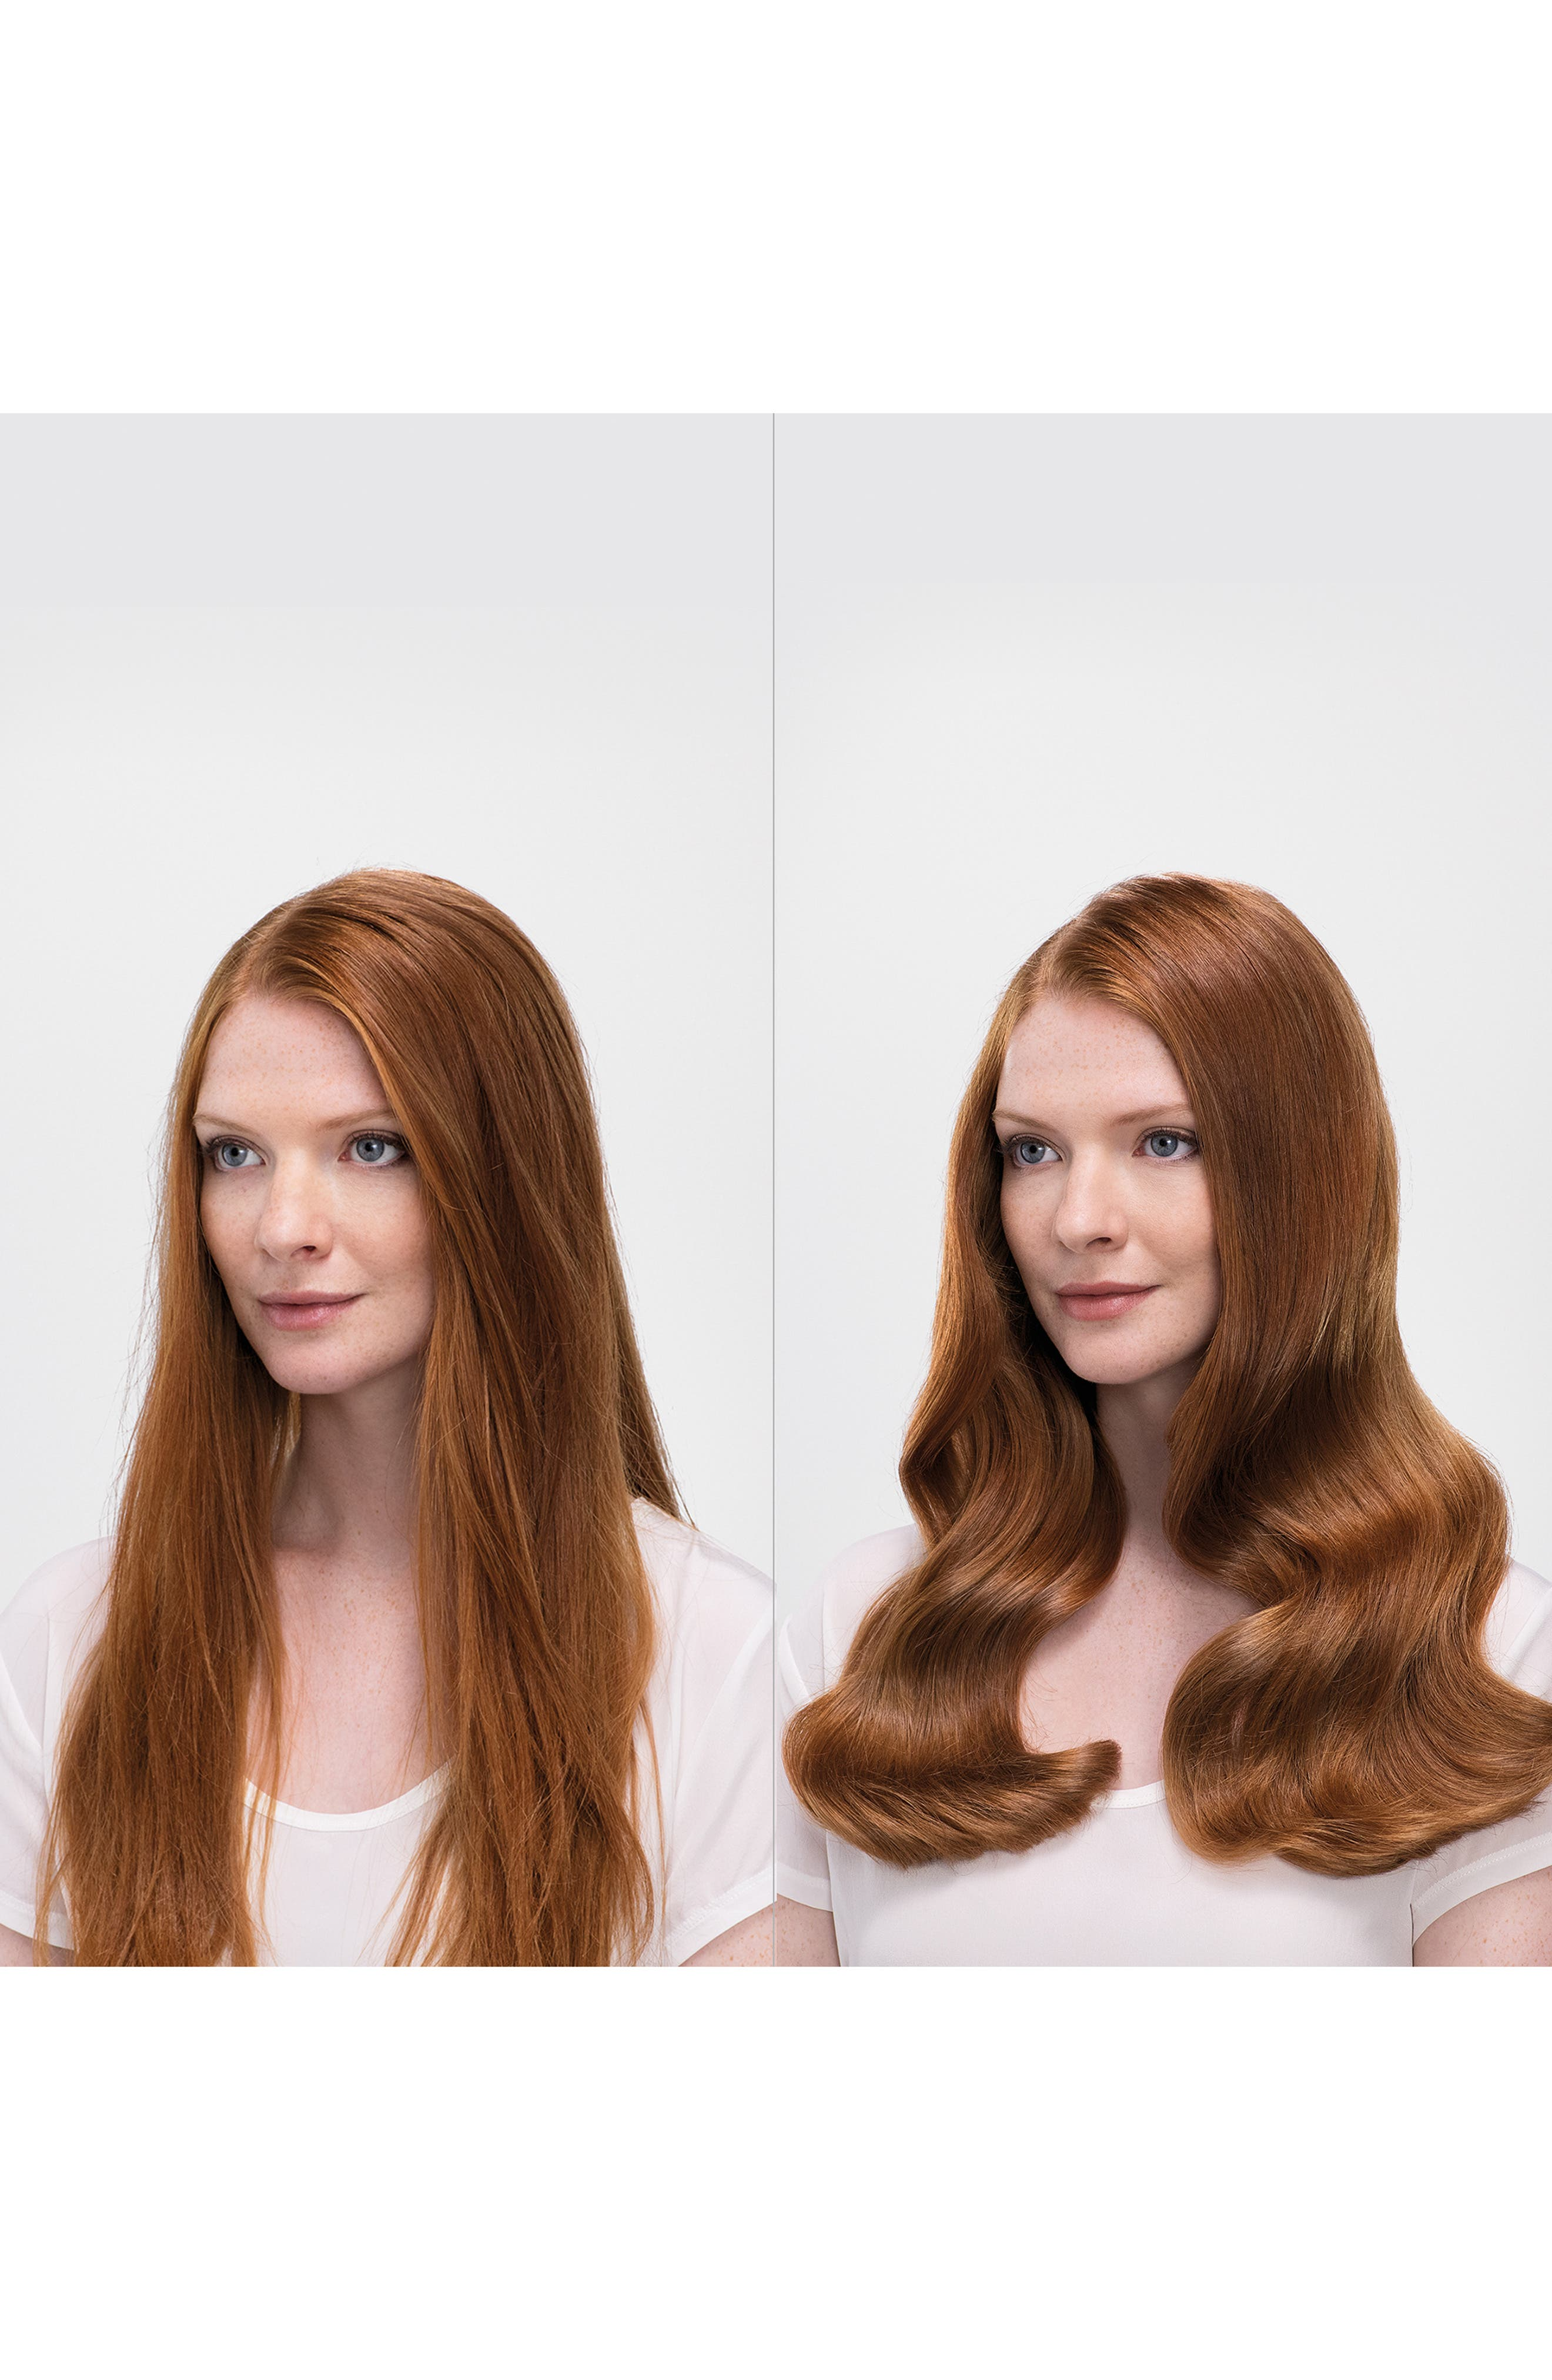 DYSON,                             Airwrap<sup>™</sup> Complete Styler – for Multiple Hair Types and Styles,                             Alternate thumbnail 3, color,                             000